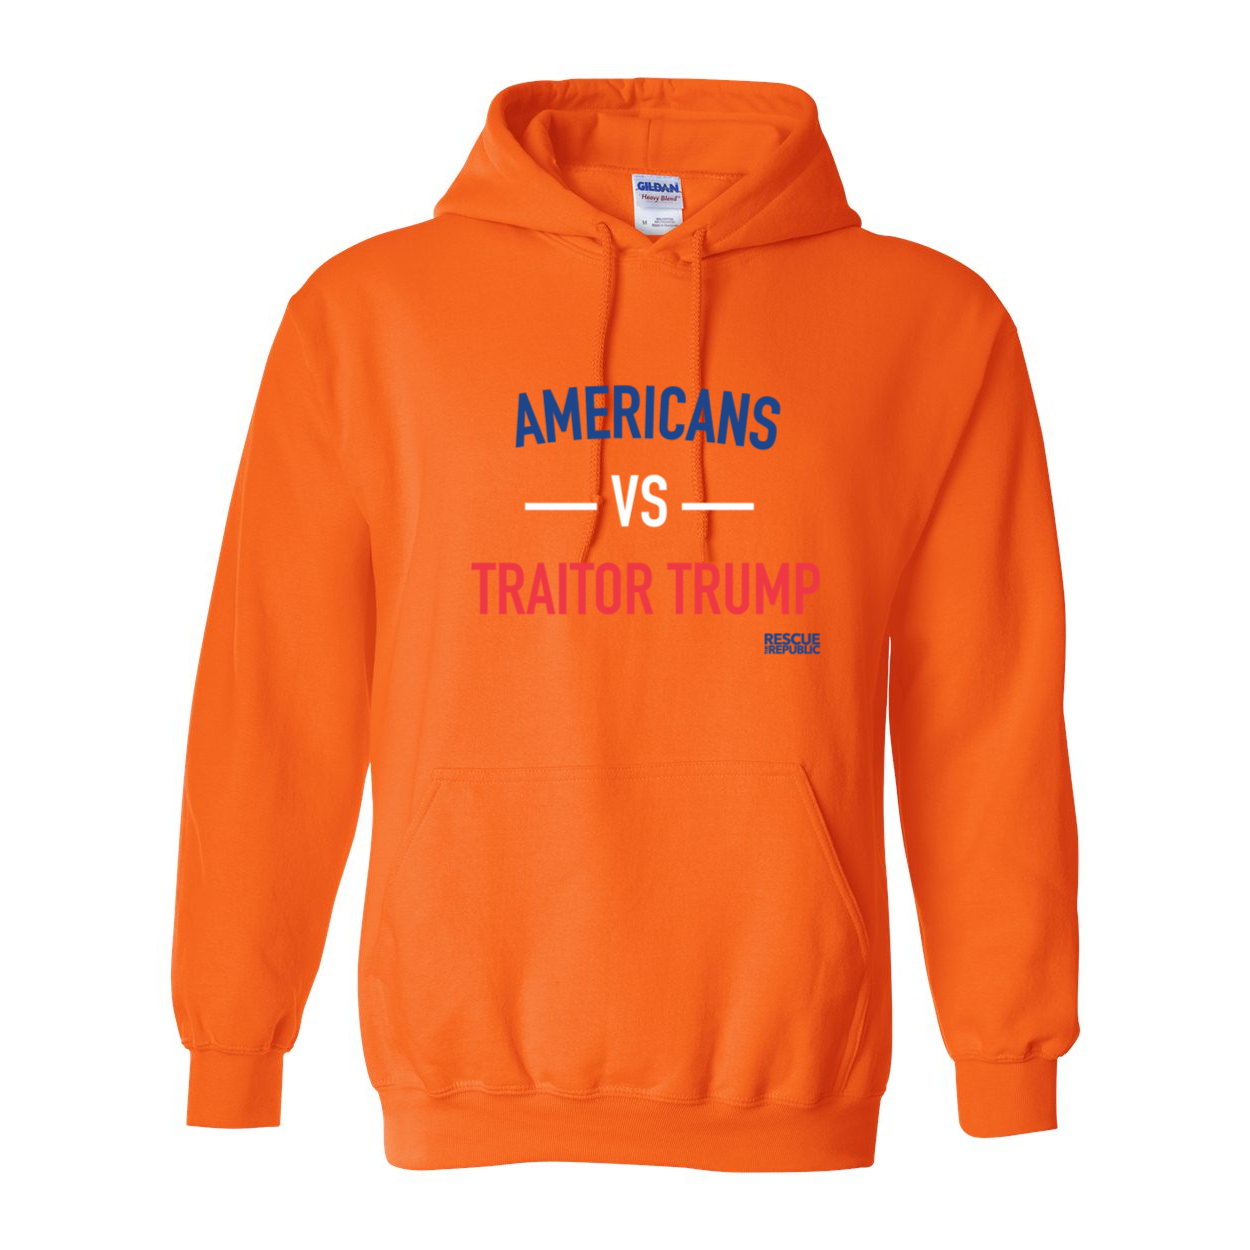 Americans VS Traitor Trump Hoodie Sweatshirt